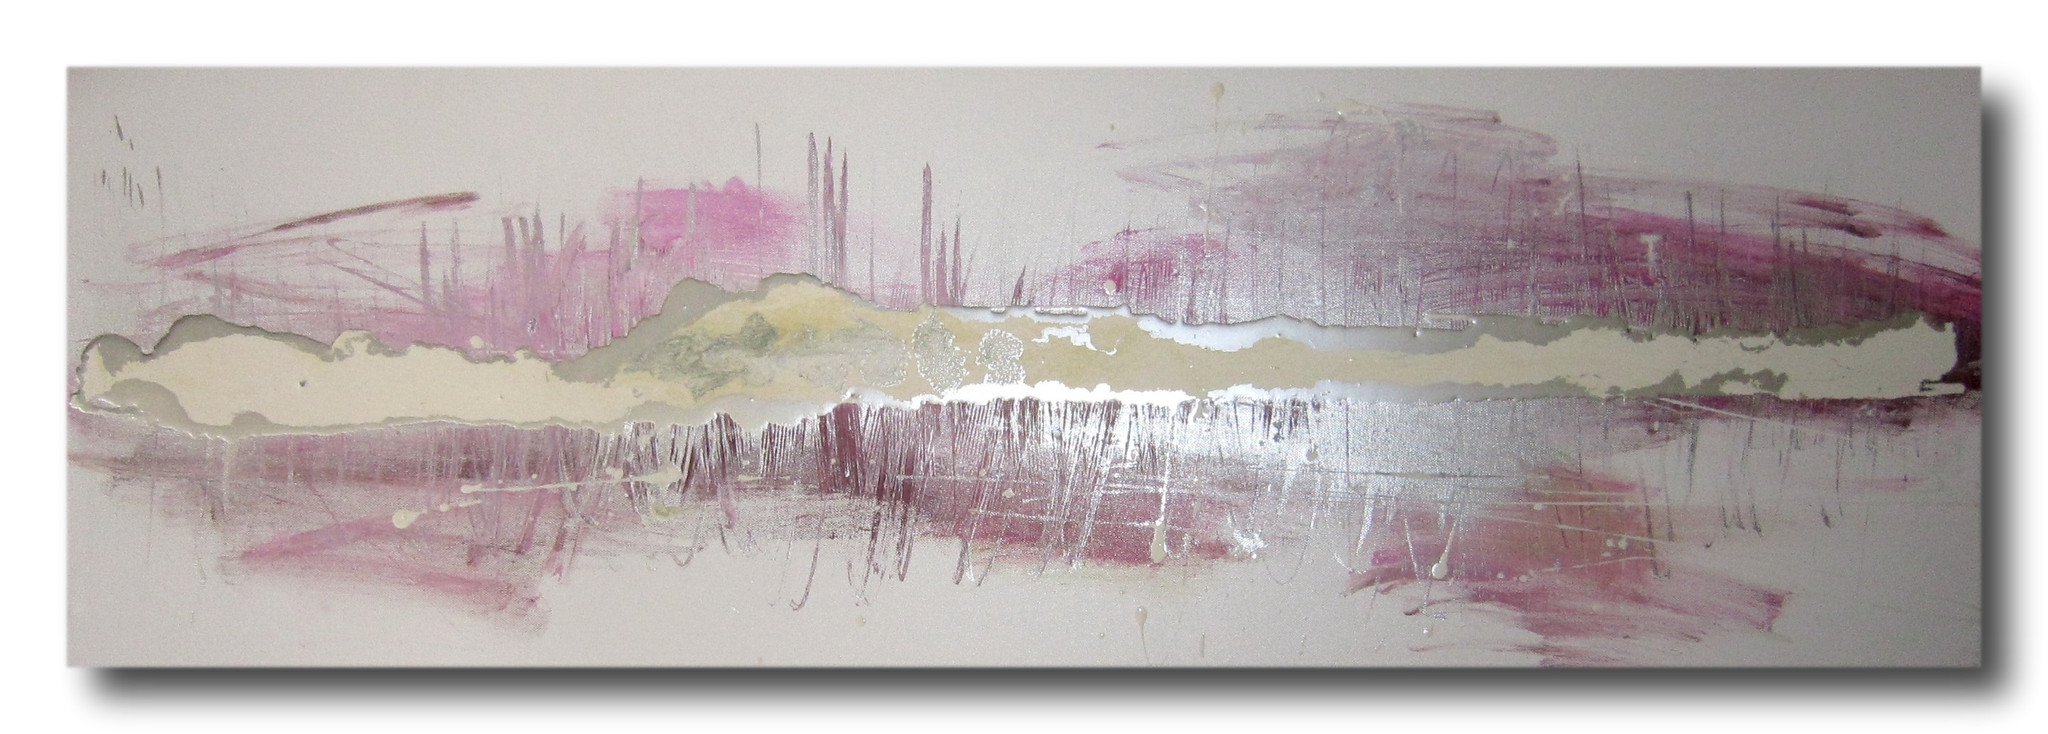 Huge Abstract Canvas Painting Wall Art White Silver Pink Throughout Latest Purple And Grey Abstract Wall Art (Gallery 19 of 20)